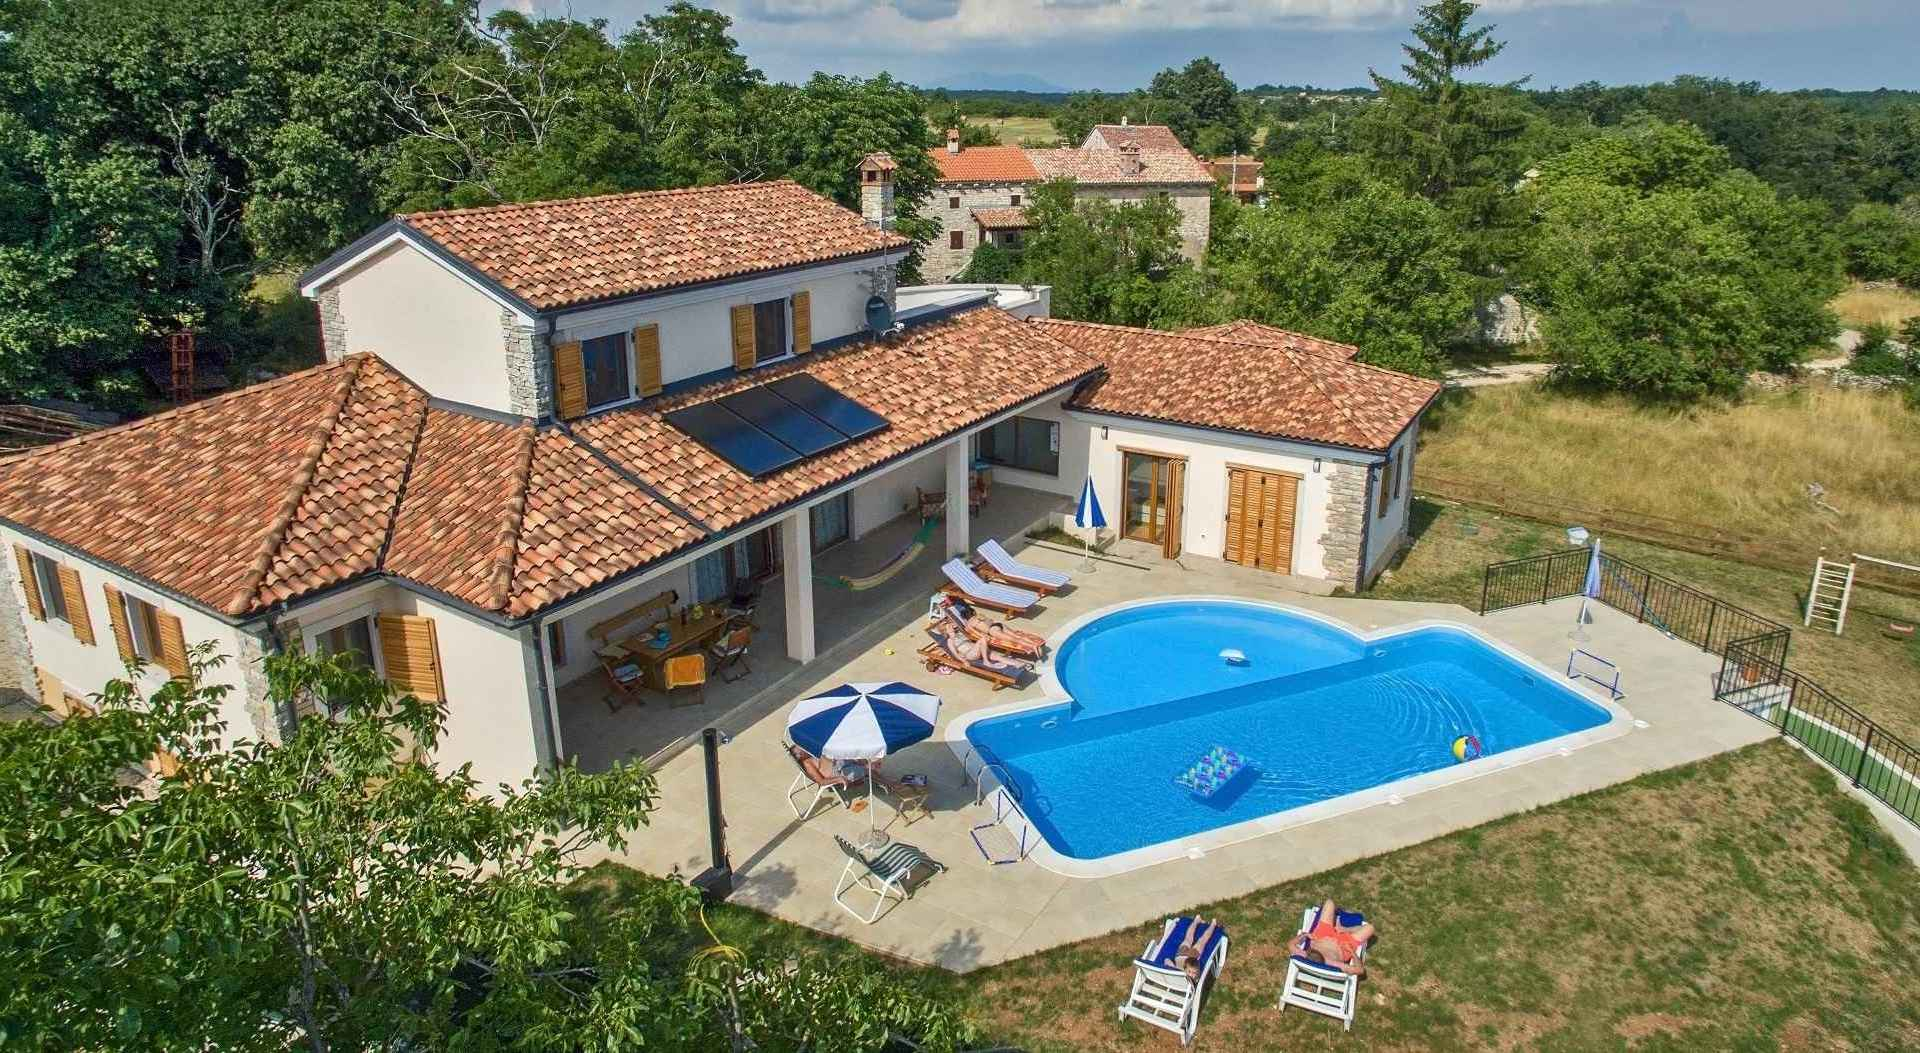 Family Holiday Villa in Istria with pool and full privacy